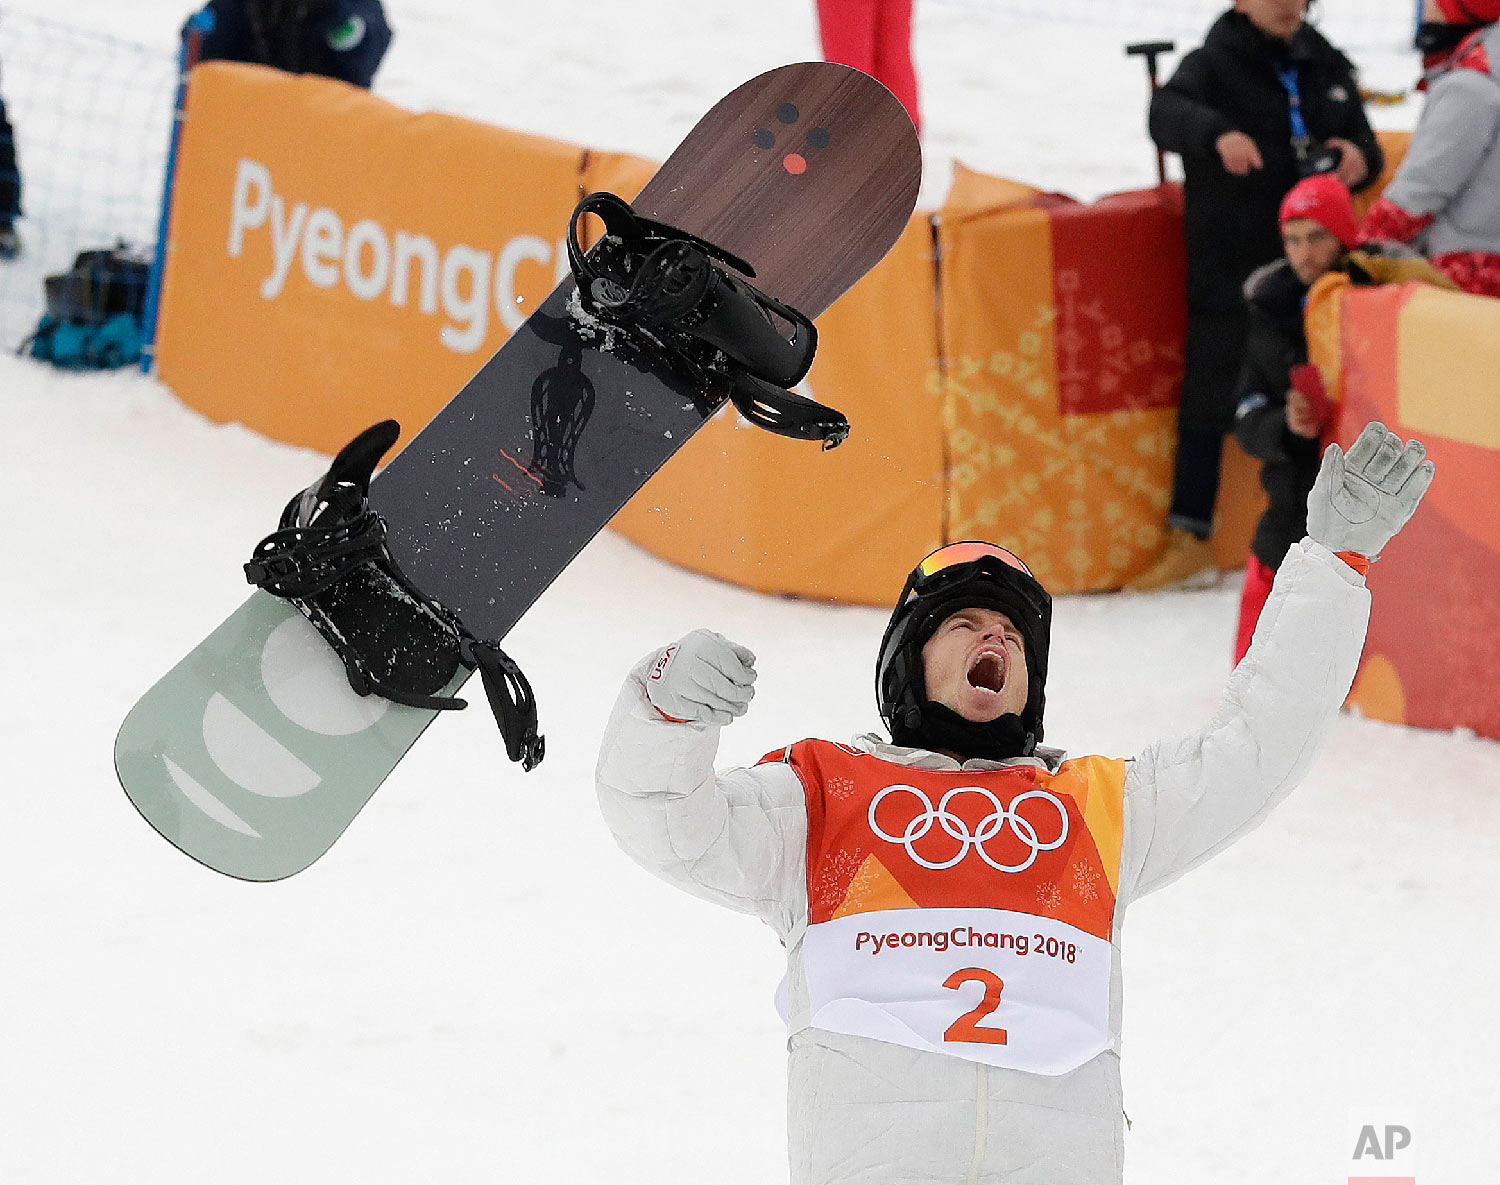 Shaun White, of the United States, celebrates winning gold after his run during the men's halfpipe finals at the 2018 Winter Olympics in Pyeongchang, South Korea, on Feb. 14, 2018. (AP Photo/Gregory Bull)